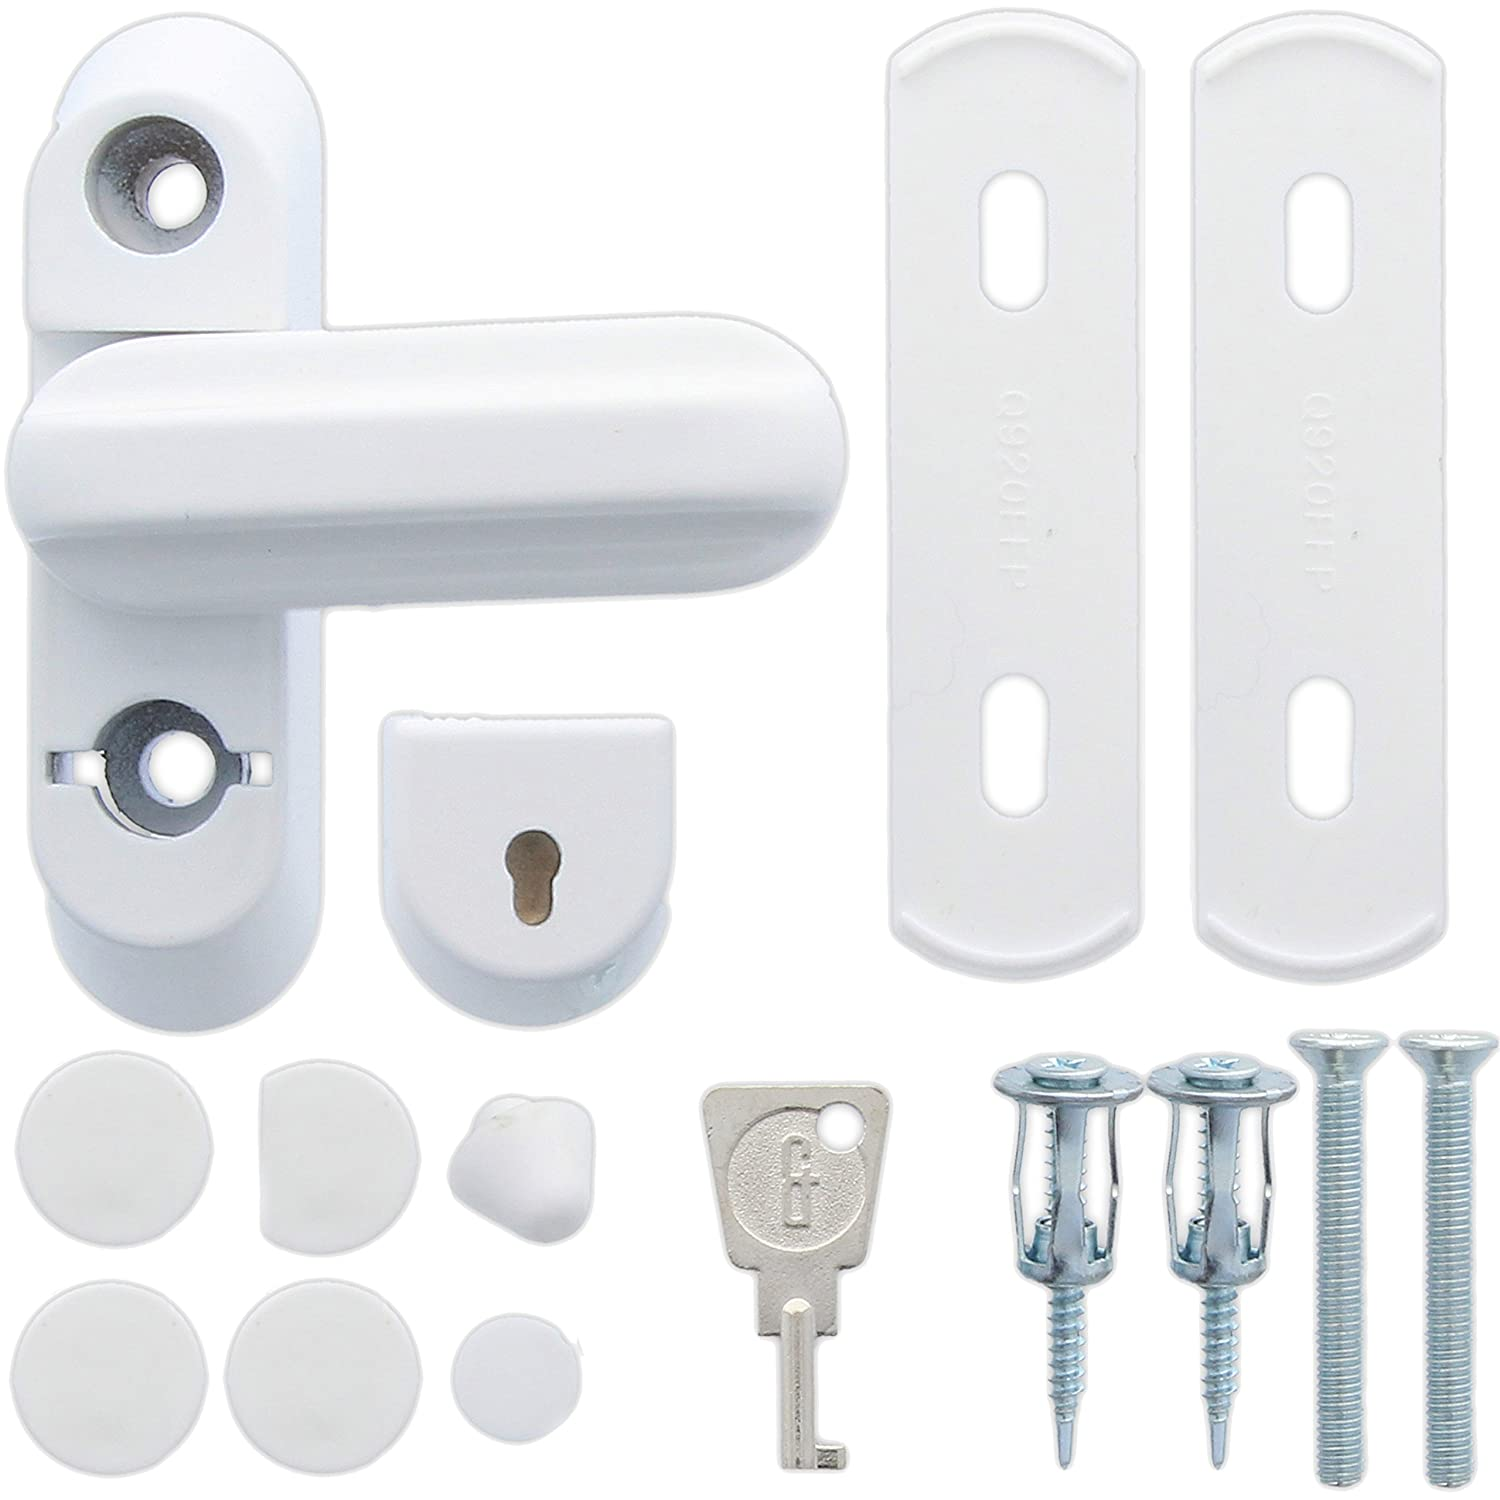 White ERA UPVC Sash Jammer Snap Lock Window/Door Frame Locking Security Restrictor WhiteHinge